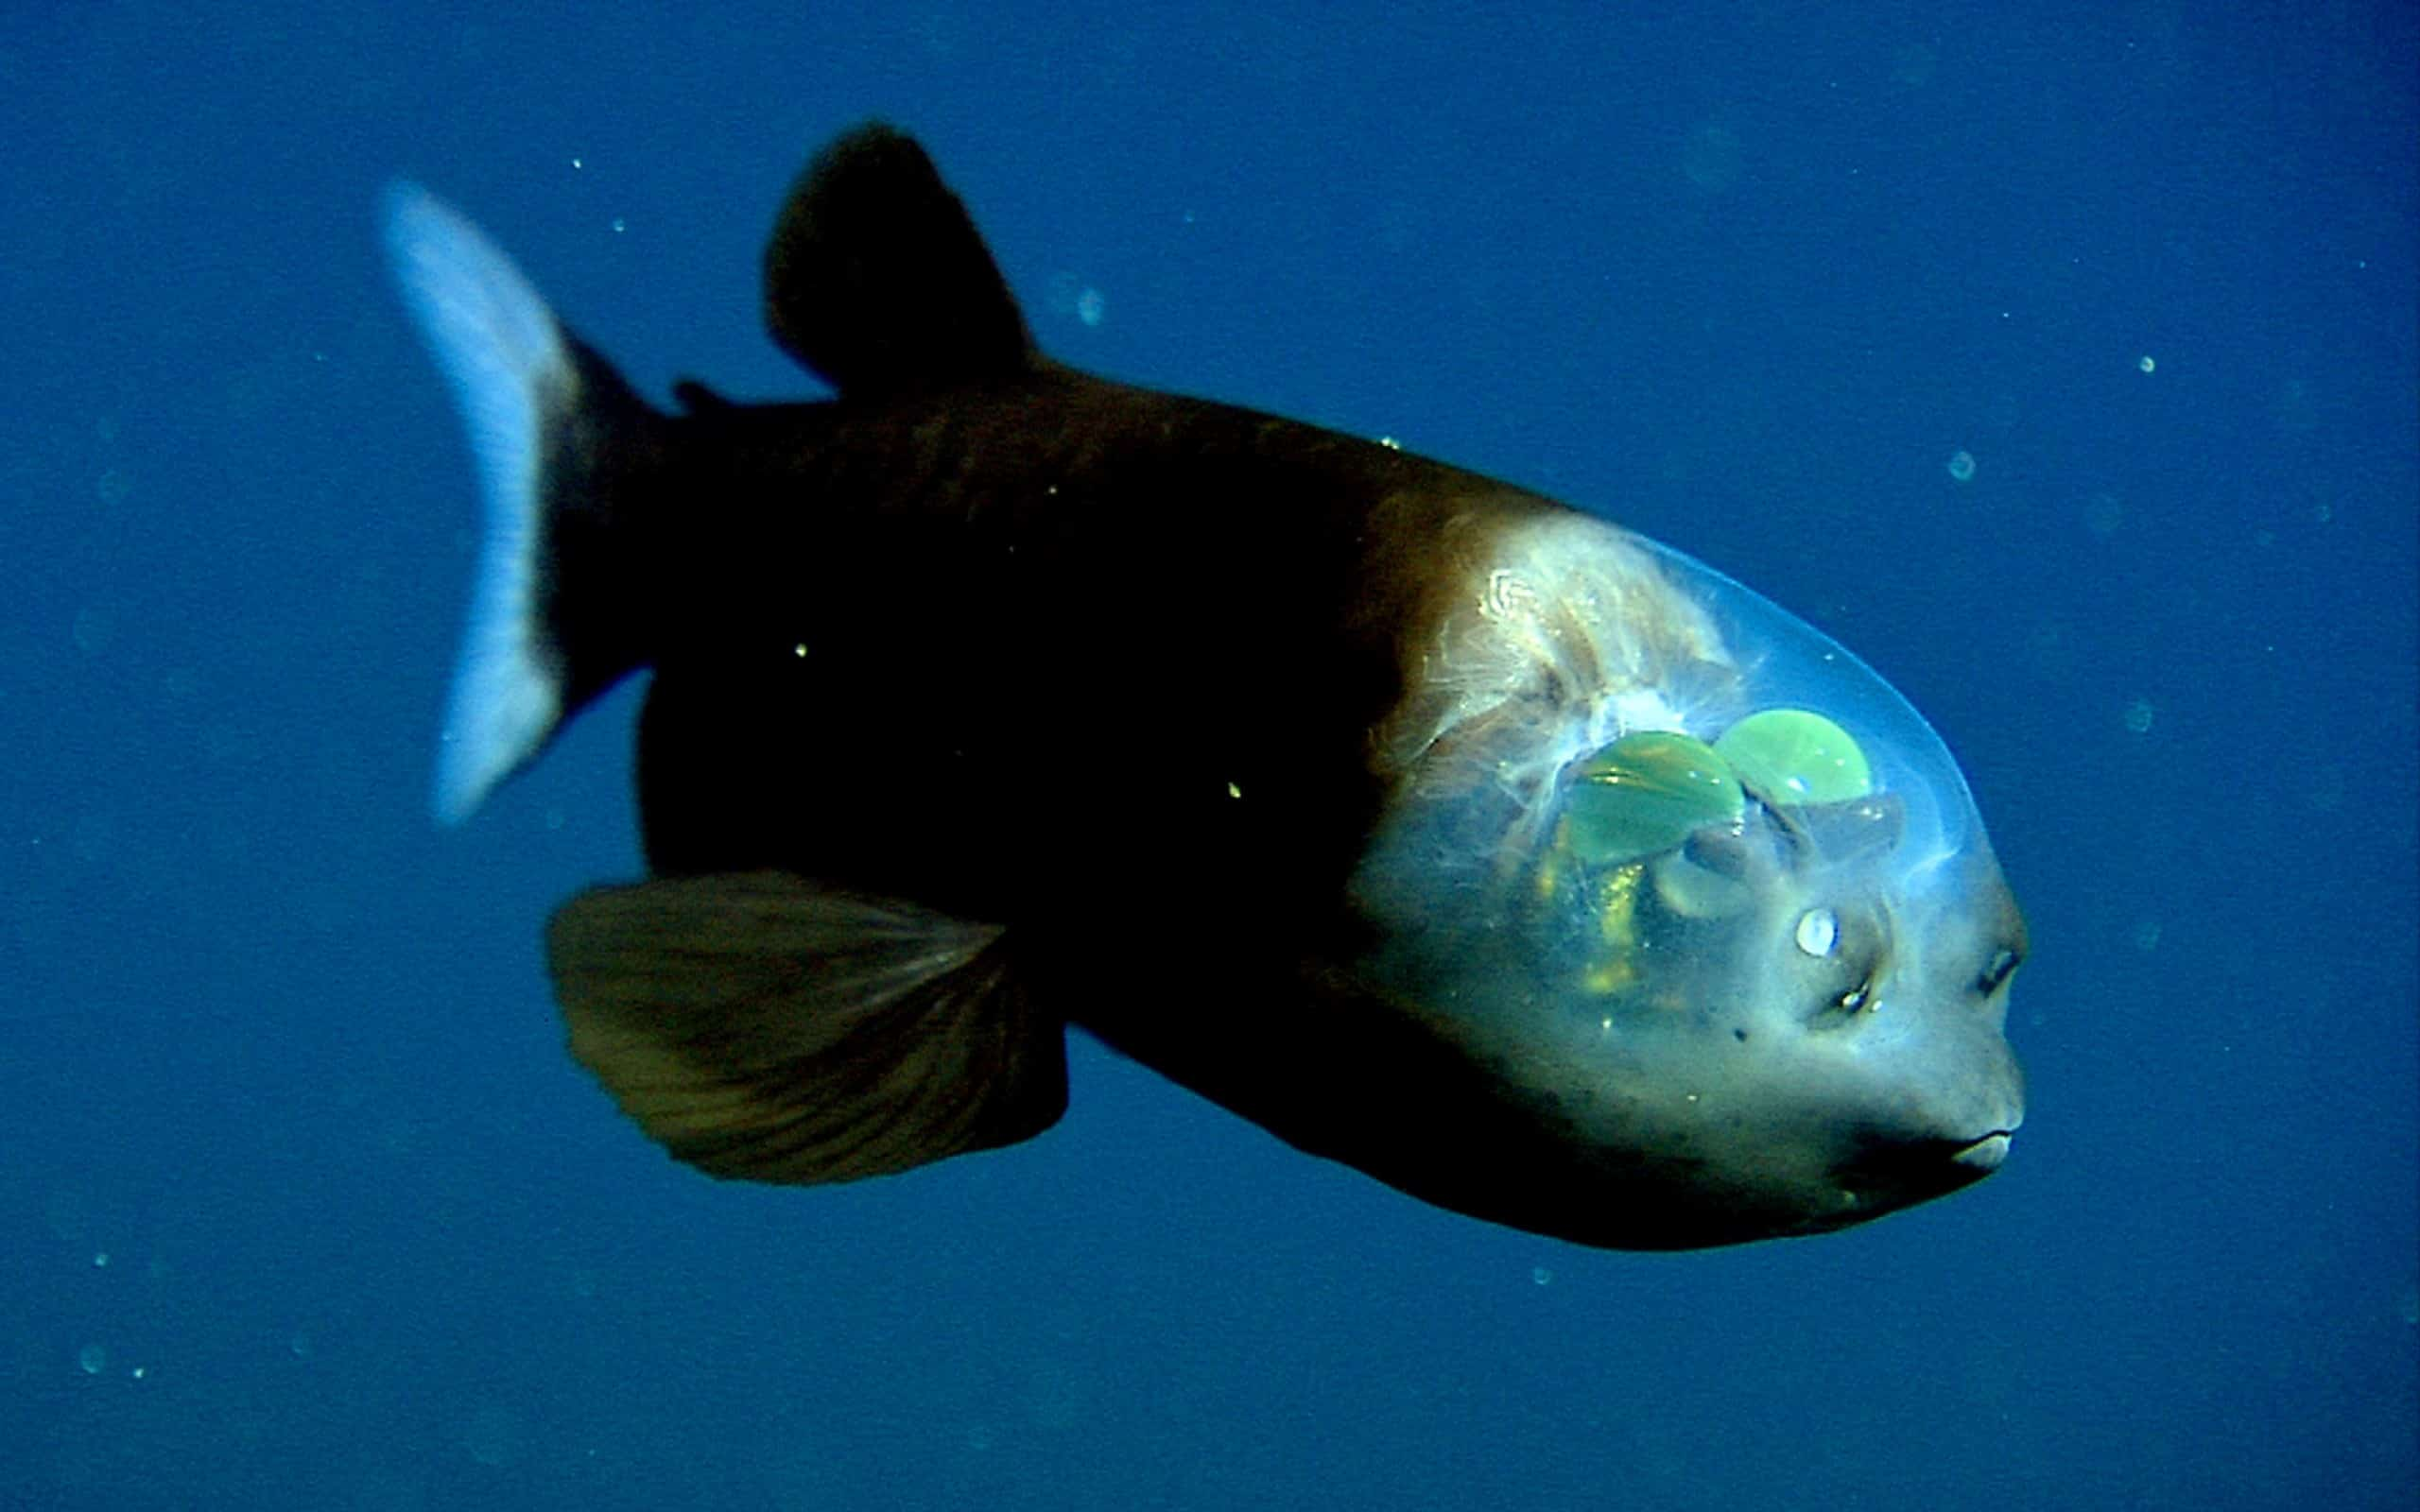 the fish with the transparent head